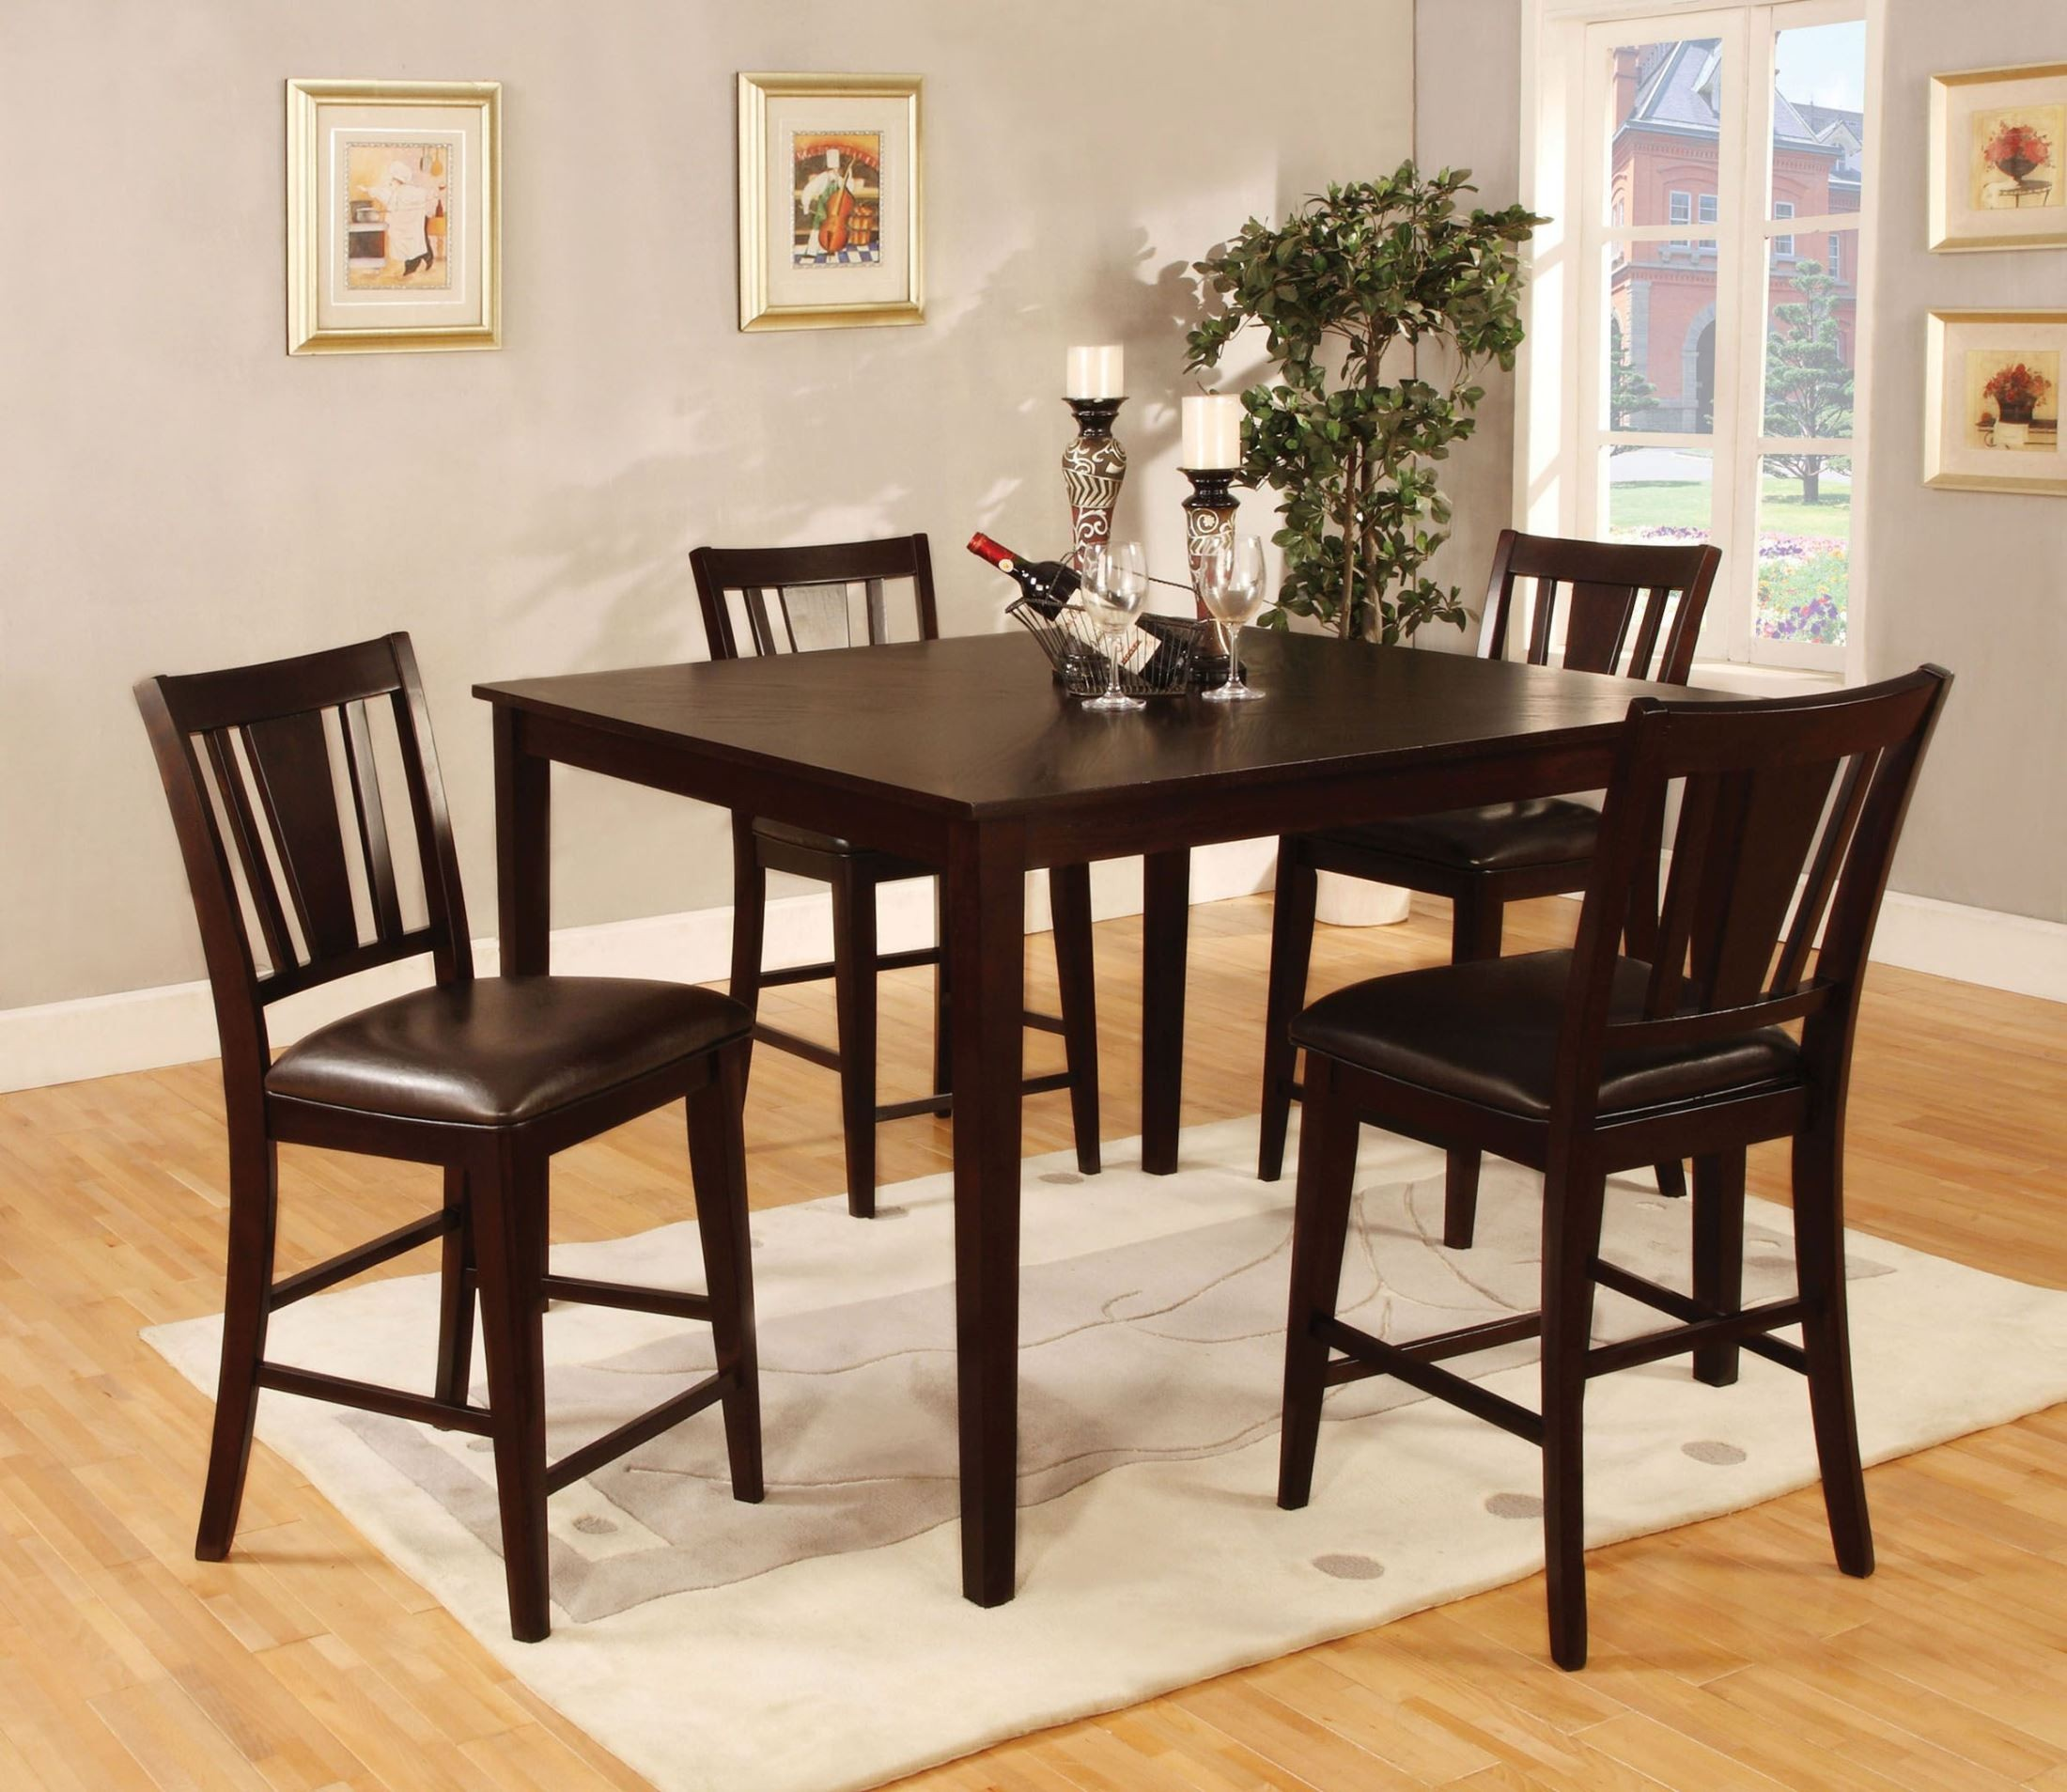 Bar Table Chairs Set Crown Mark Alyssa 3 Piece Bar Table: Bridgette II 5 Piece Square Counter Height Table Set From